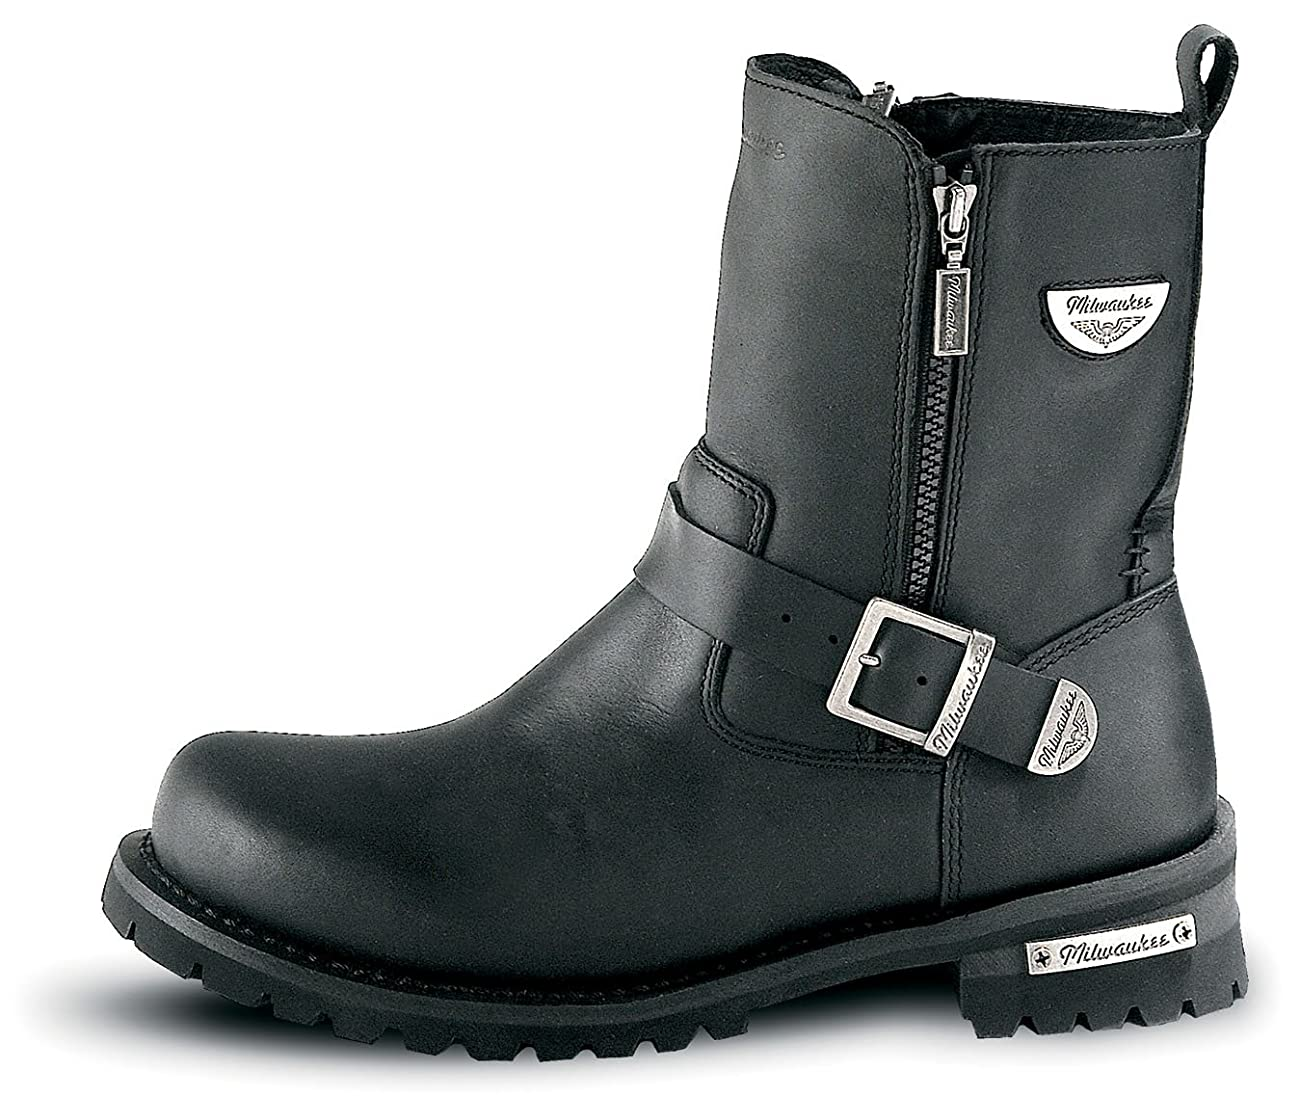 Milwaukee Motorcycle Clothing Company Mens Afterburner Boots (Black, Size 9.5) 0